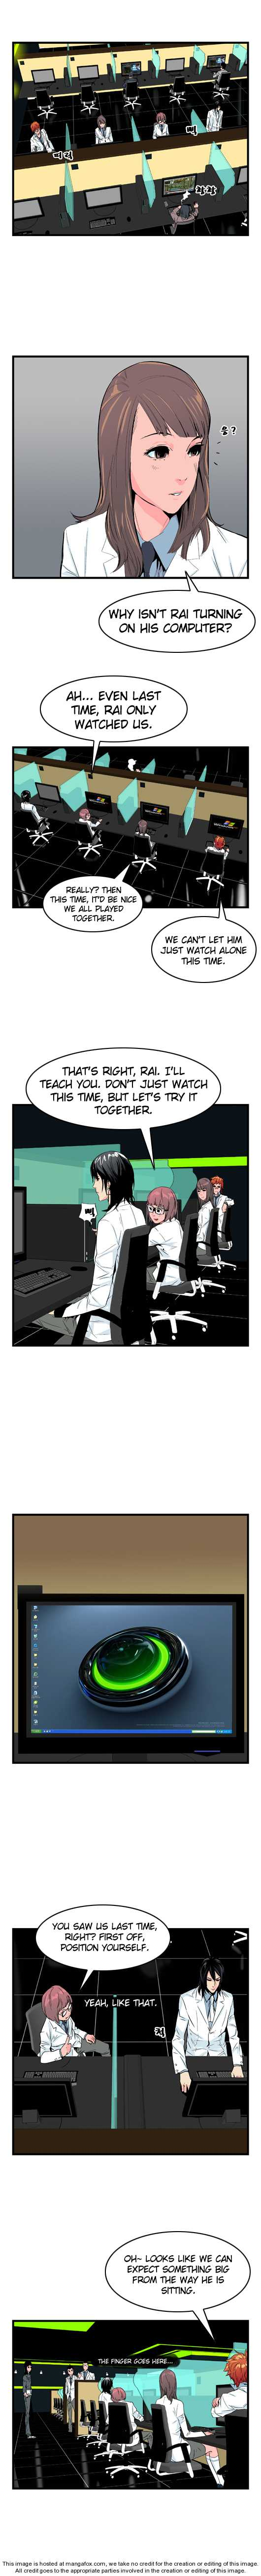 Noblesse 21 Page 2